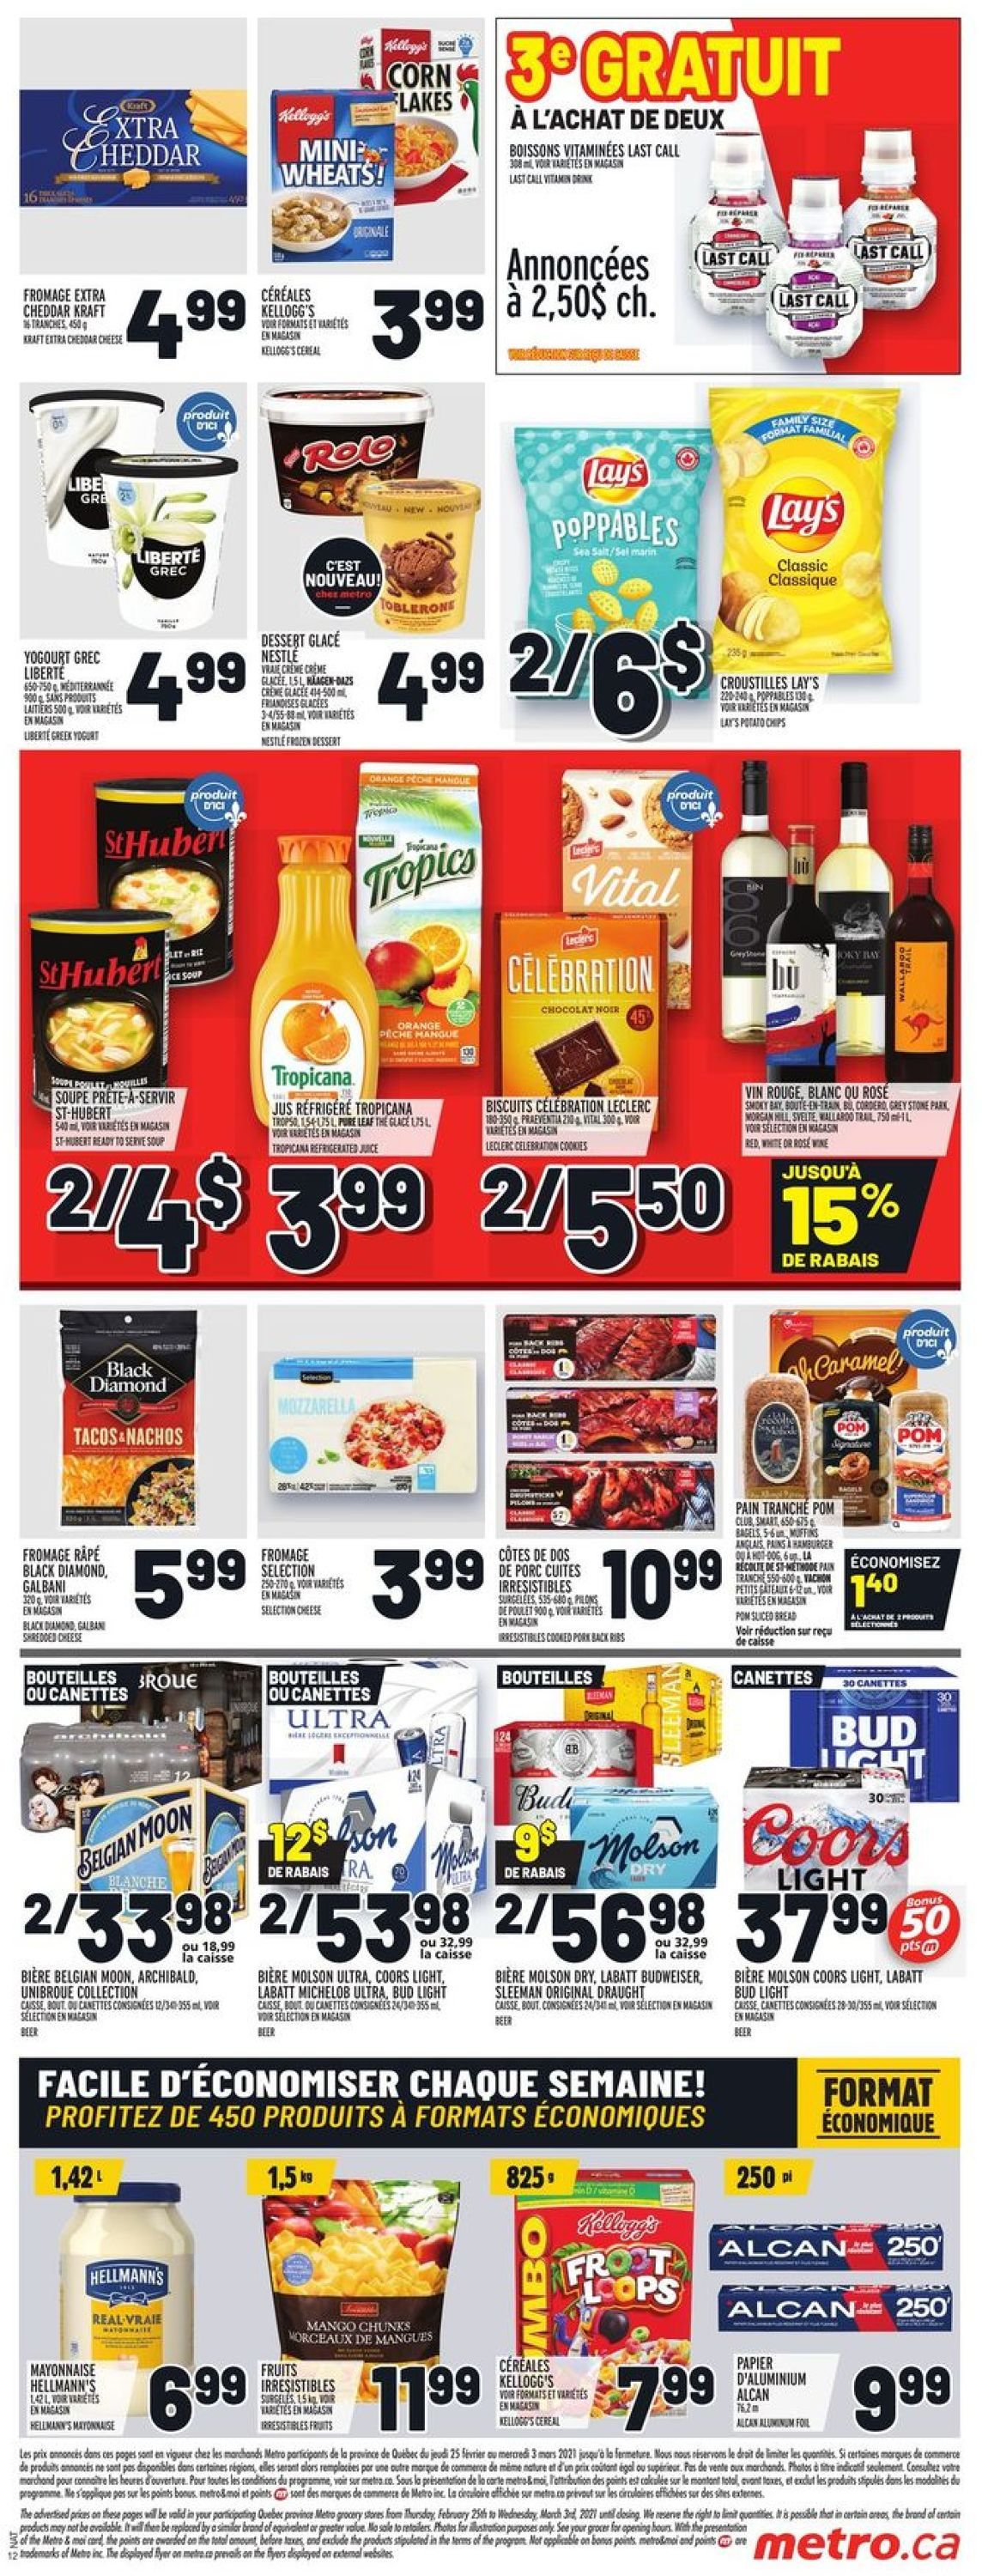 Metro Flyer - 02/25-03/03/2021 (Page 3)